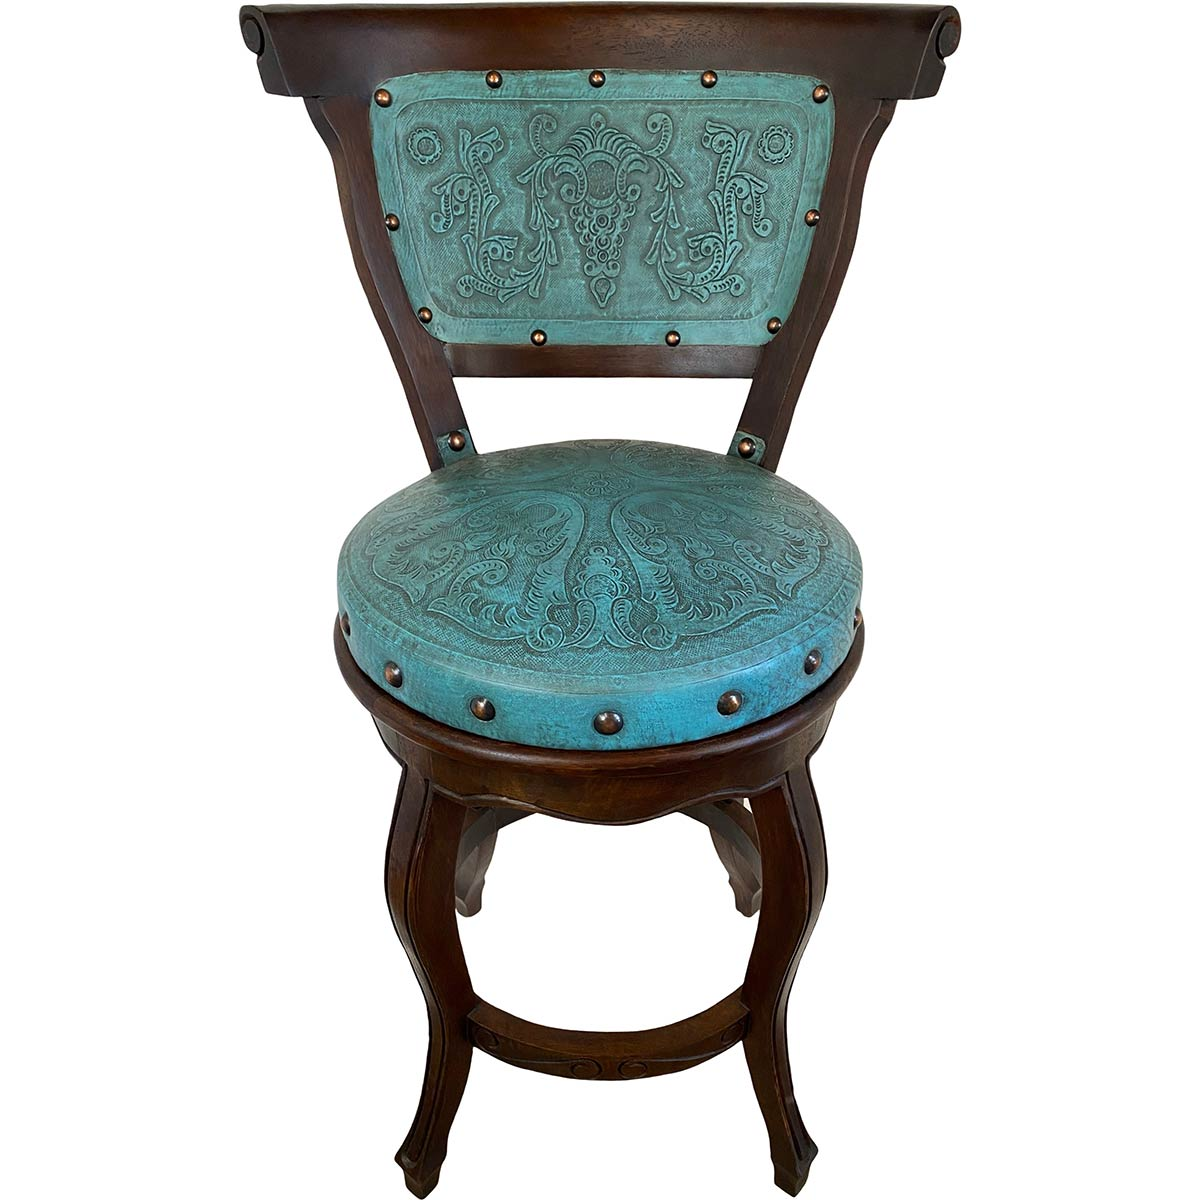 Spanish Heritage Swivel Barstool with Back - Teal